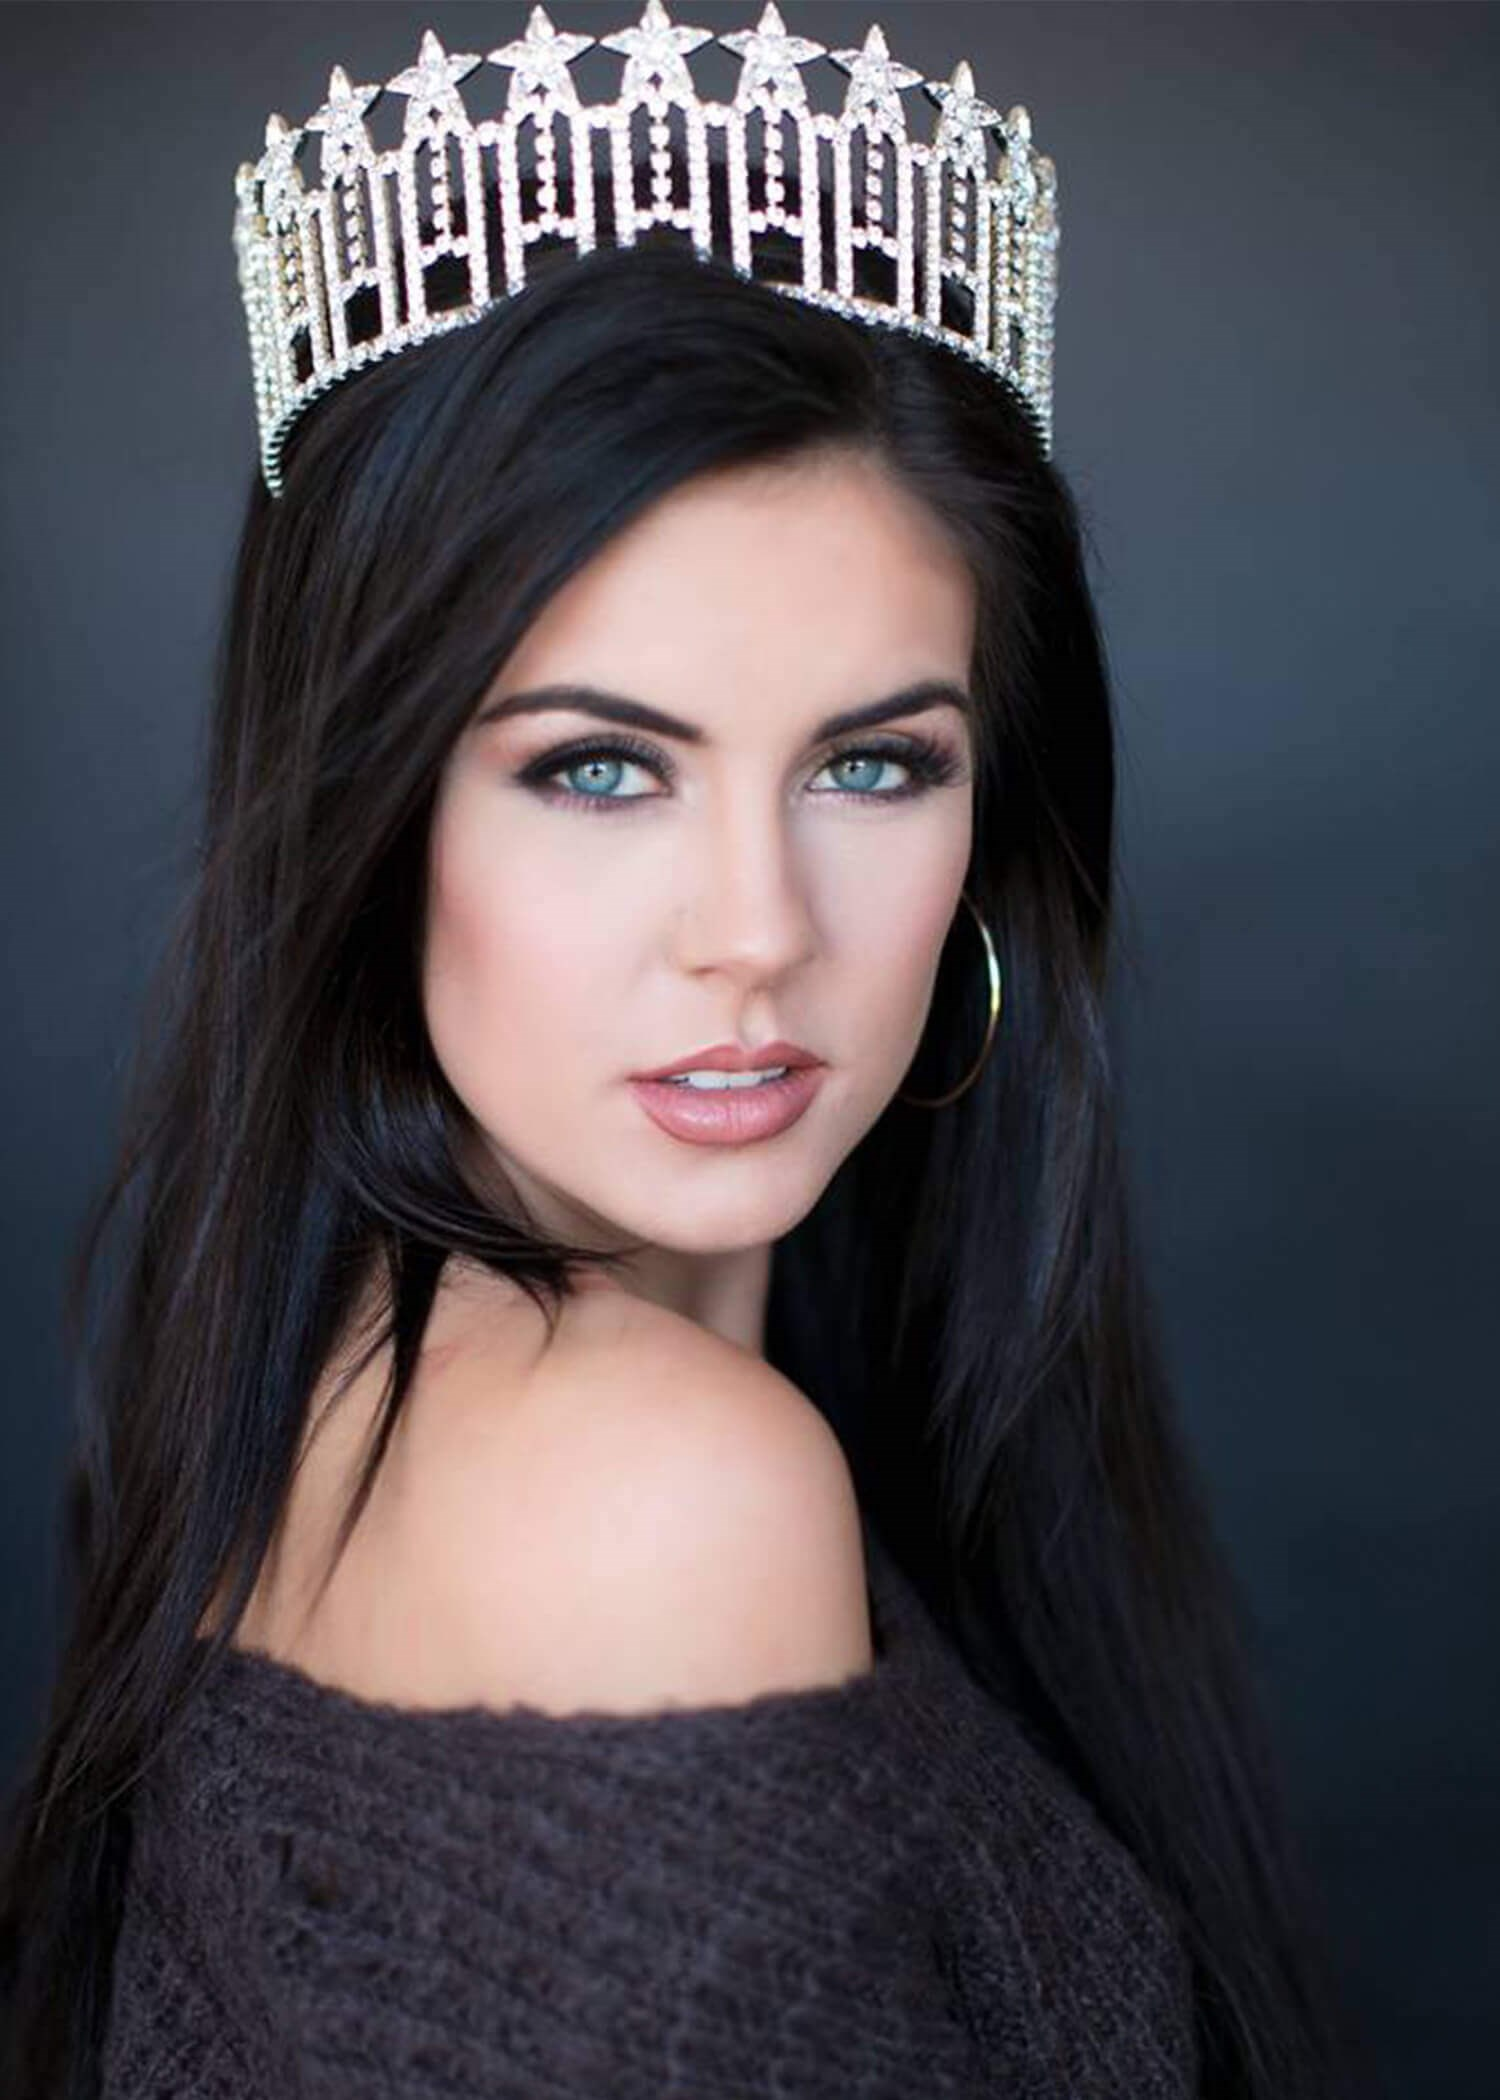 Miss Arkansas sees 20/15 After LASIK